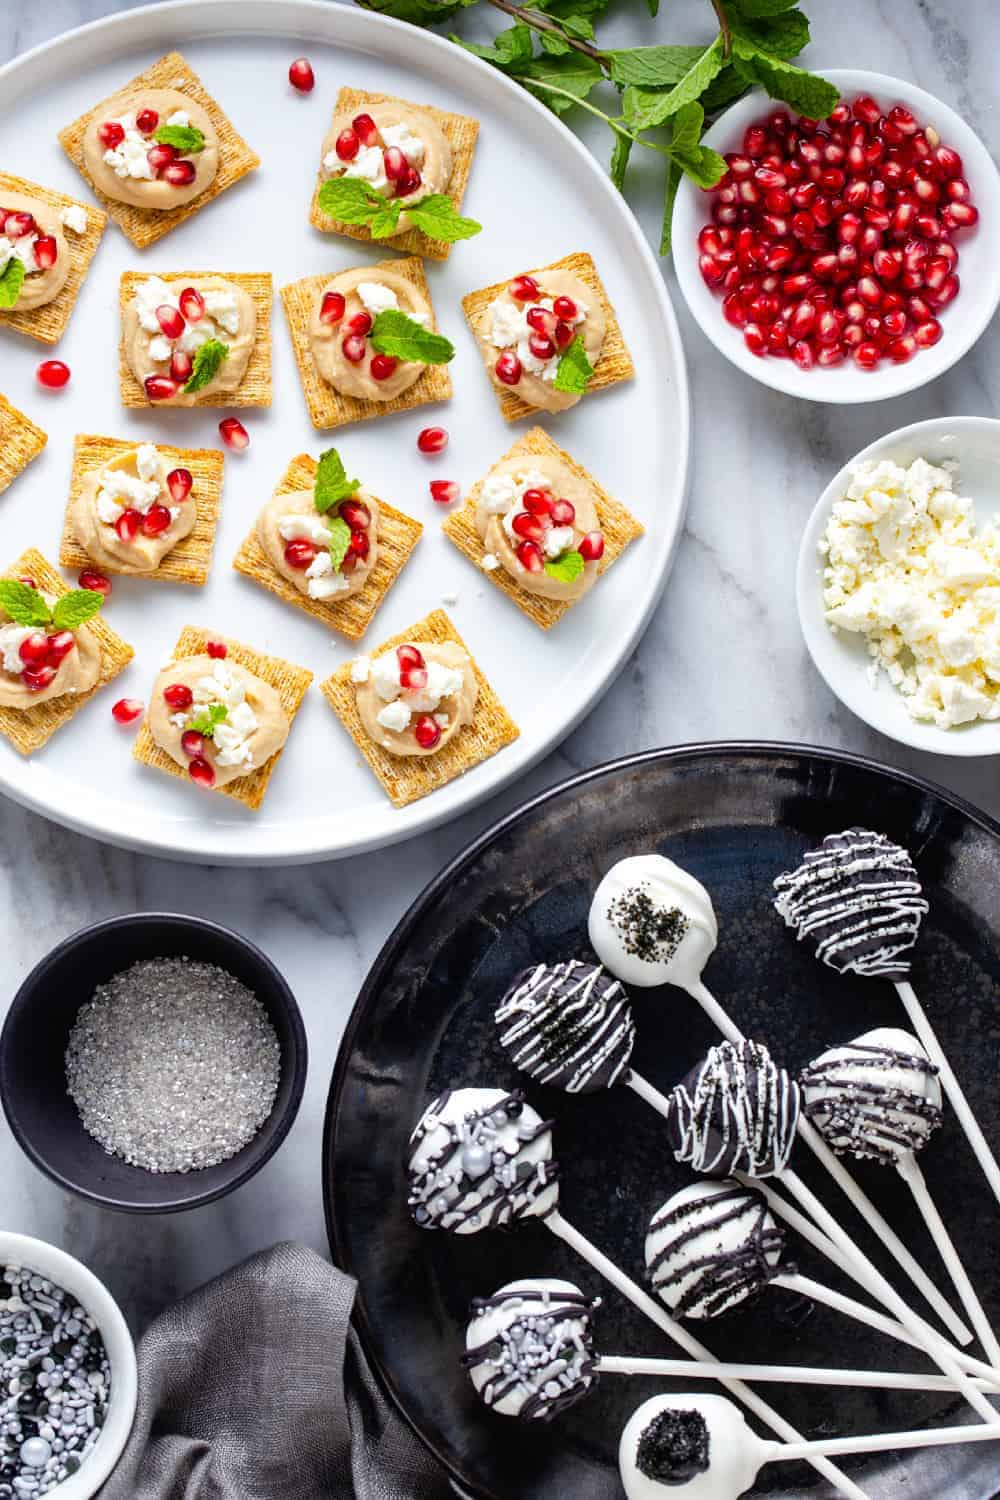 Hosting your very own New Year's Eve snacks party is easier than ever when you turn to your favorite sweet and savory snack recipes. This year, throw a New Year's Eve party that adults and kids alike will love.